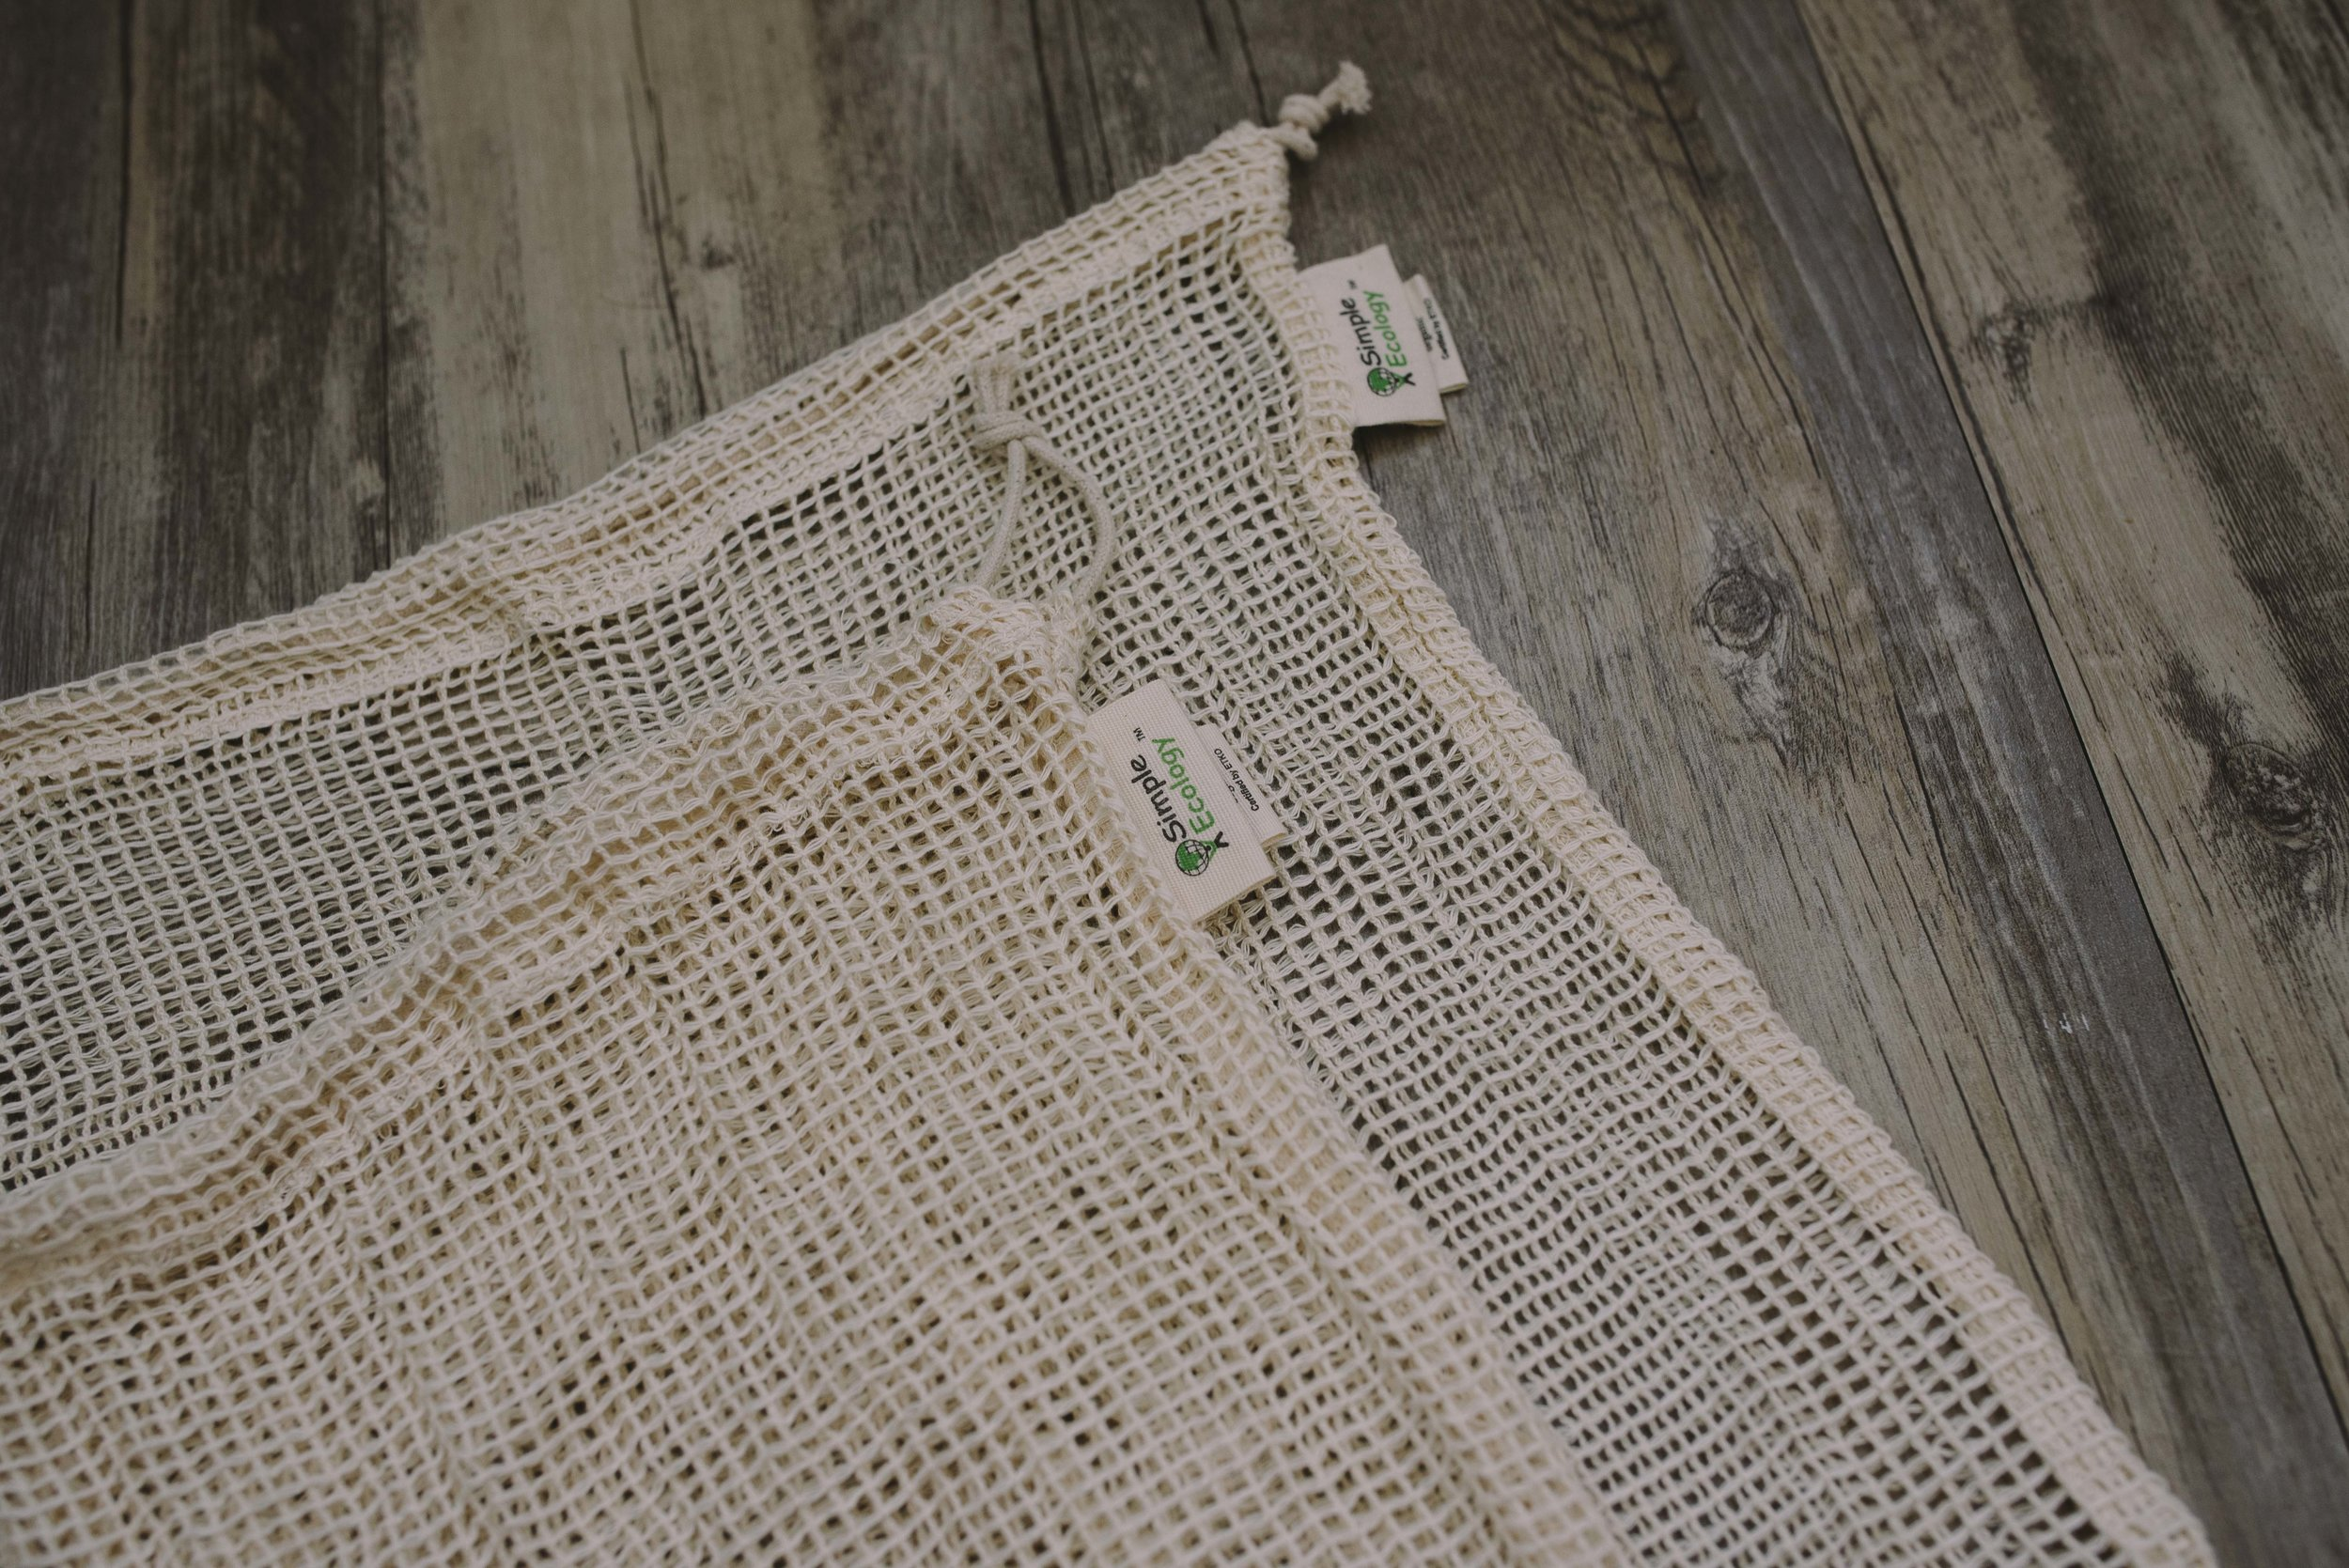 I use  Simple Ecology  produce bags that are made out of organic cotton and are machine washable.